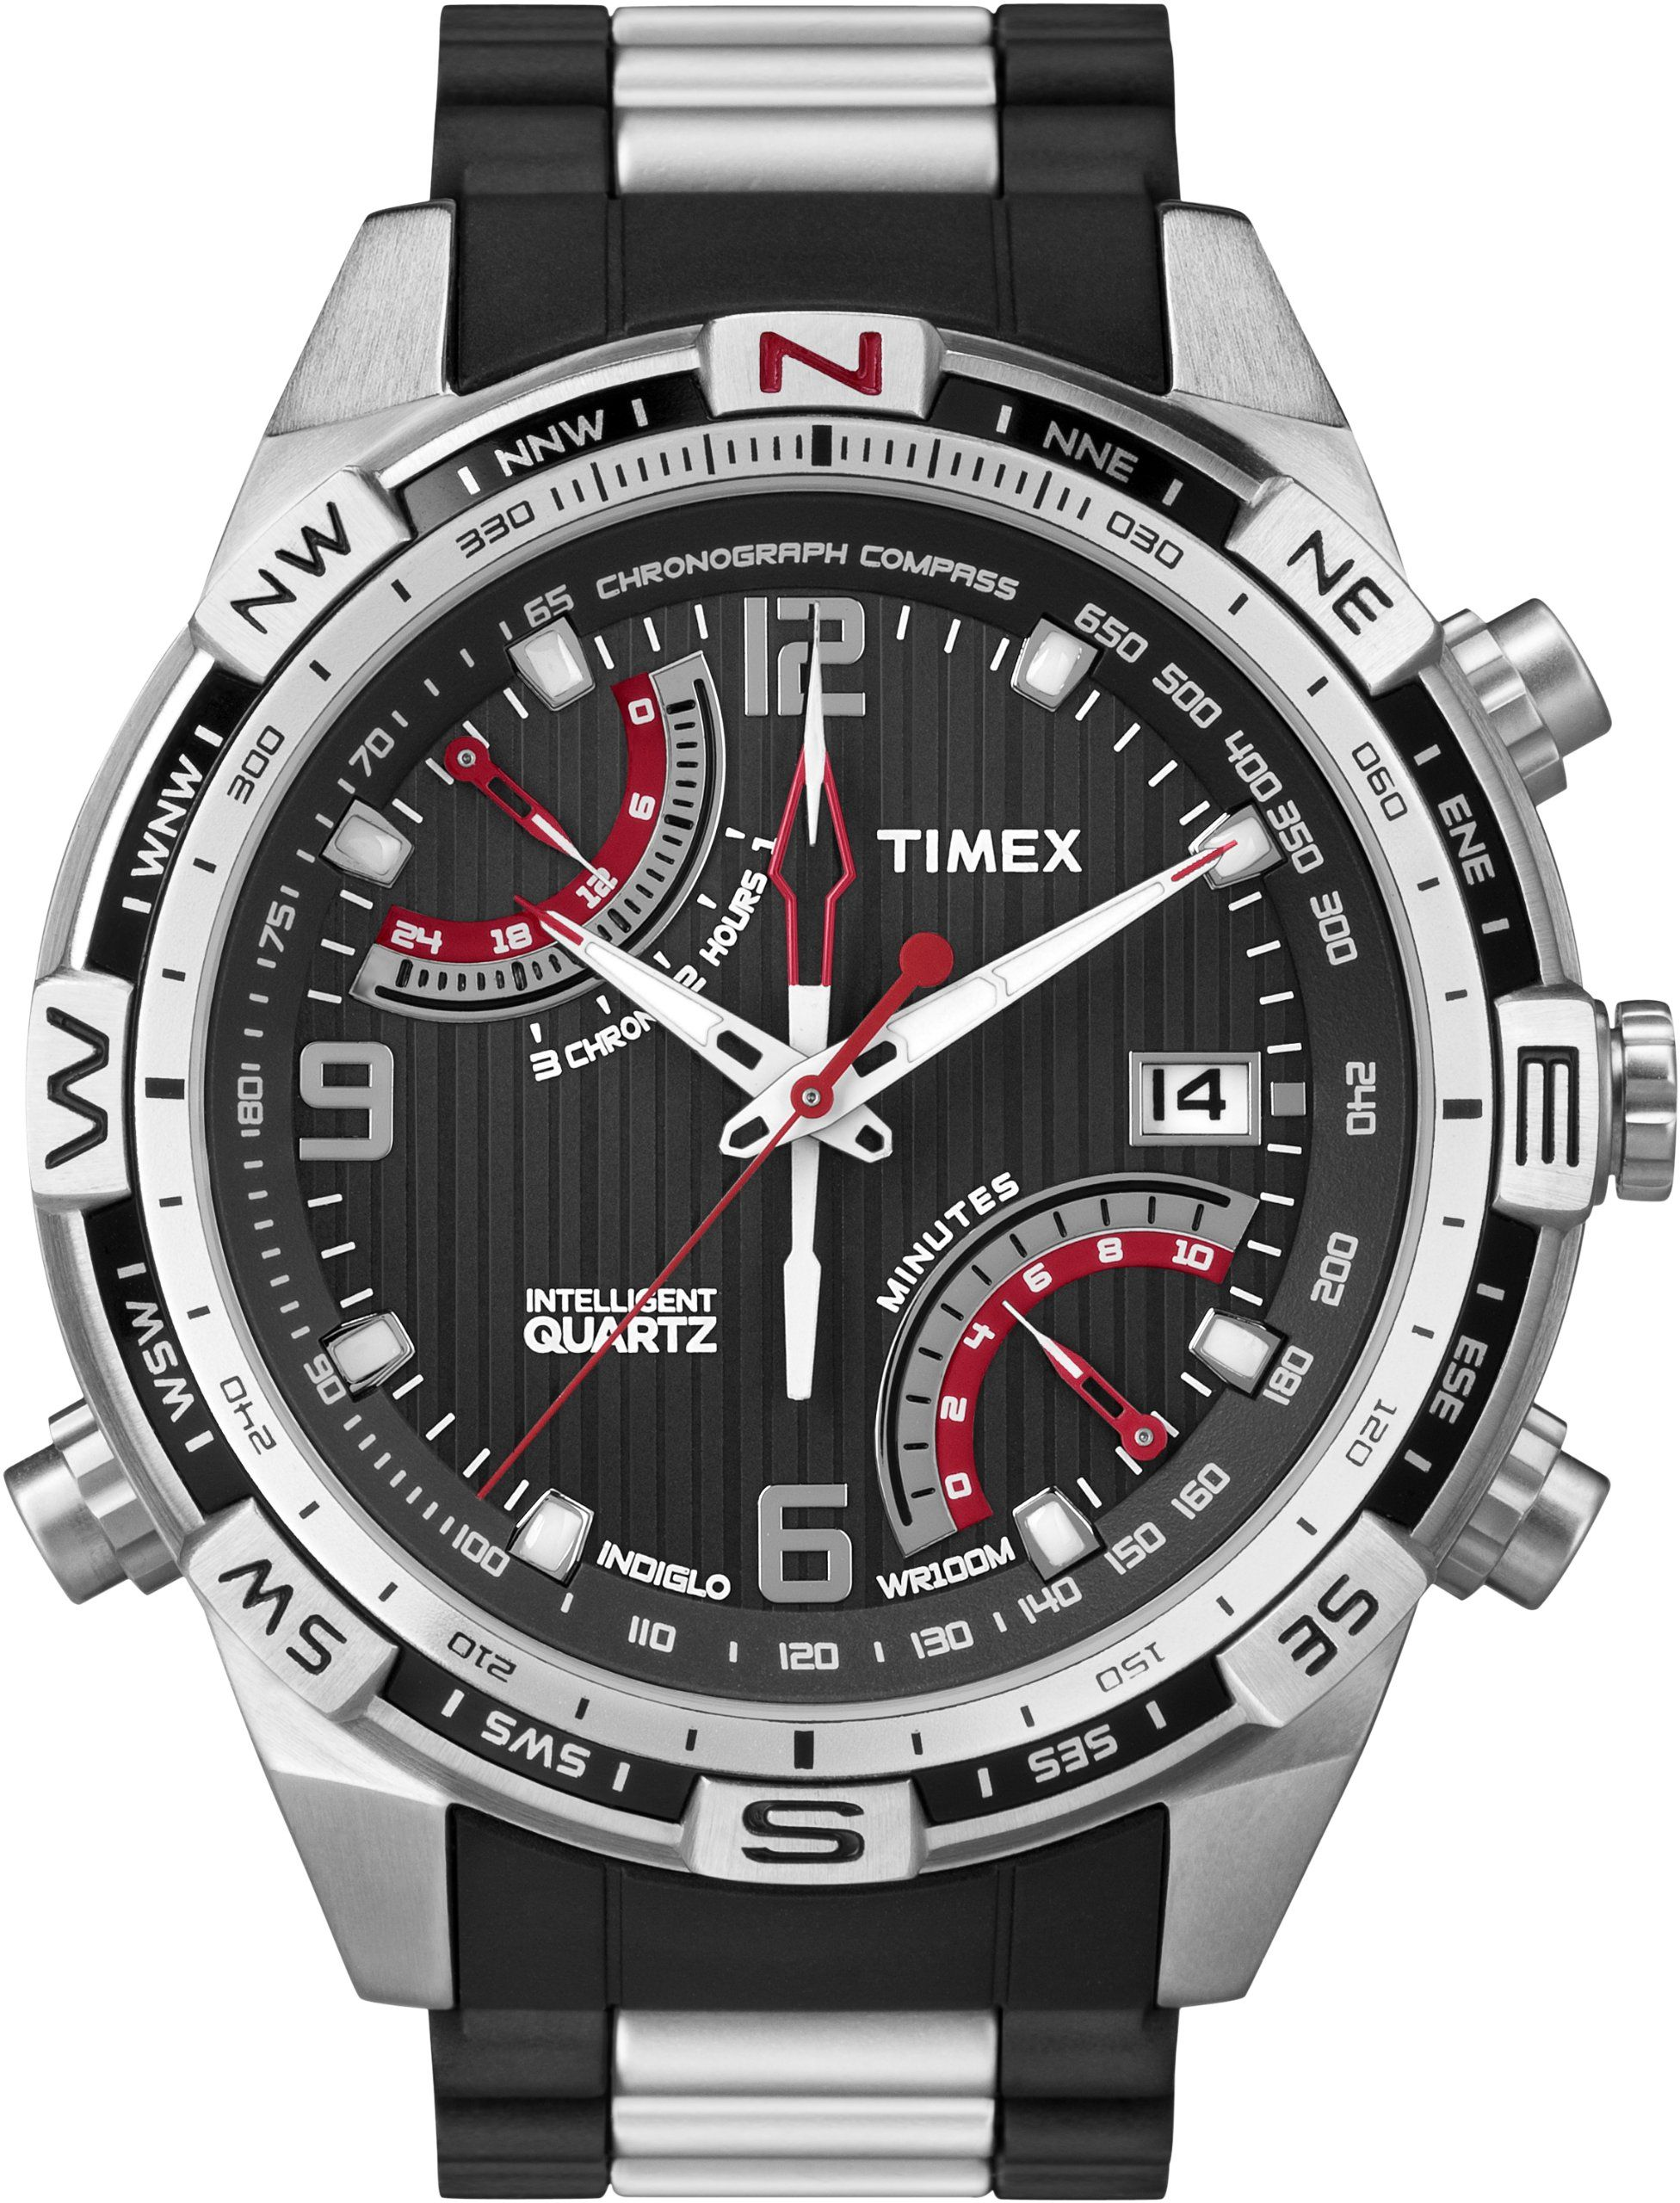 4ec5b2bd828 Timex Men s T49868 Intelligent Quartz Fly Back Chrono Compass Stainless  Steel Bracelet Watch Bijuterias